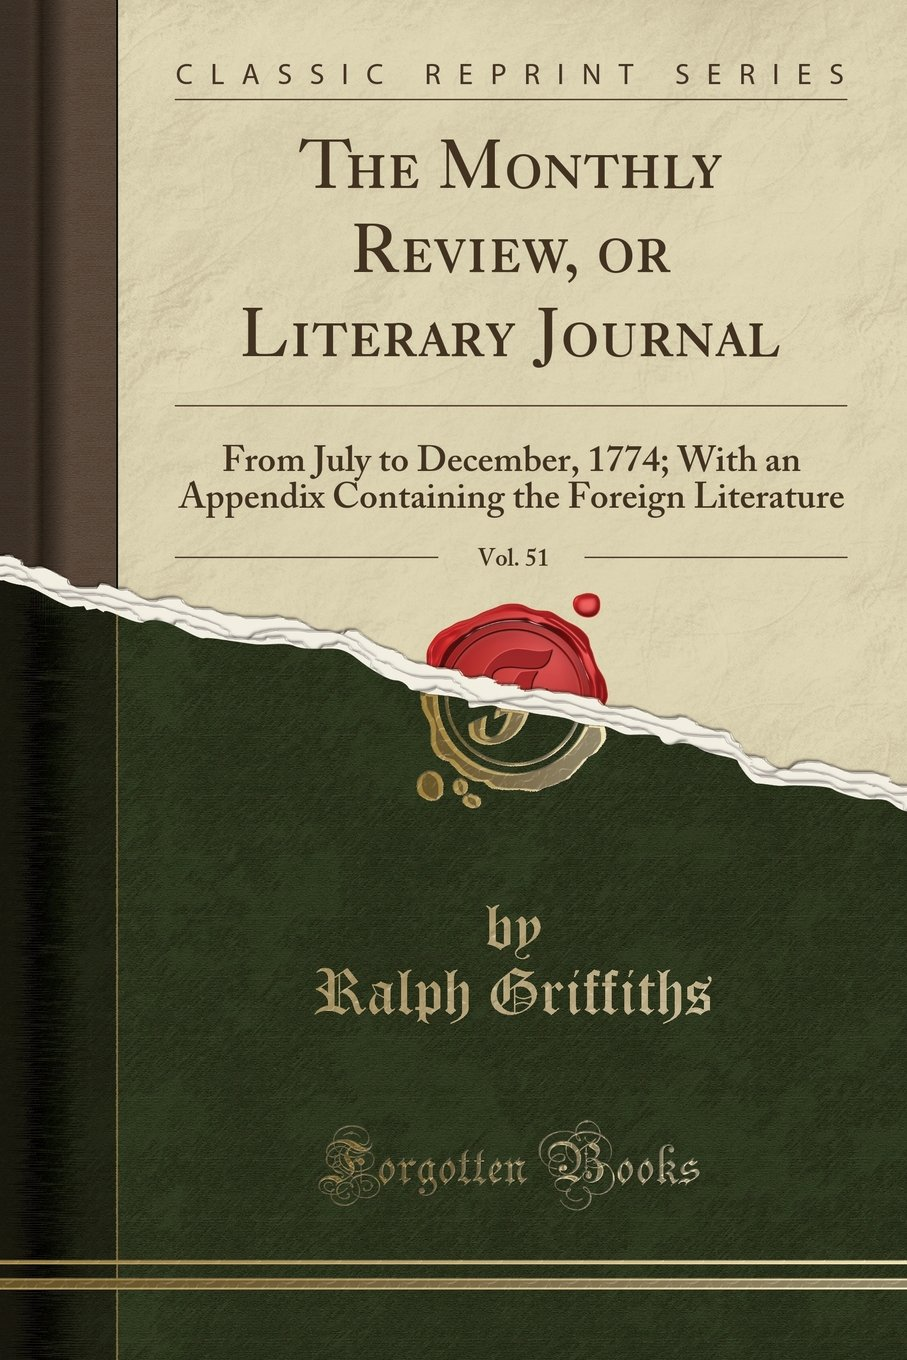 Read Online The Monthly Review, or Literary Journal, Vol. 51: From July to December, 1774; With an Appendix Containing the Foreign Literature (Classic Reprint) PDF